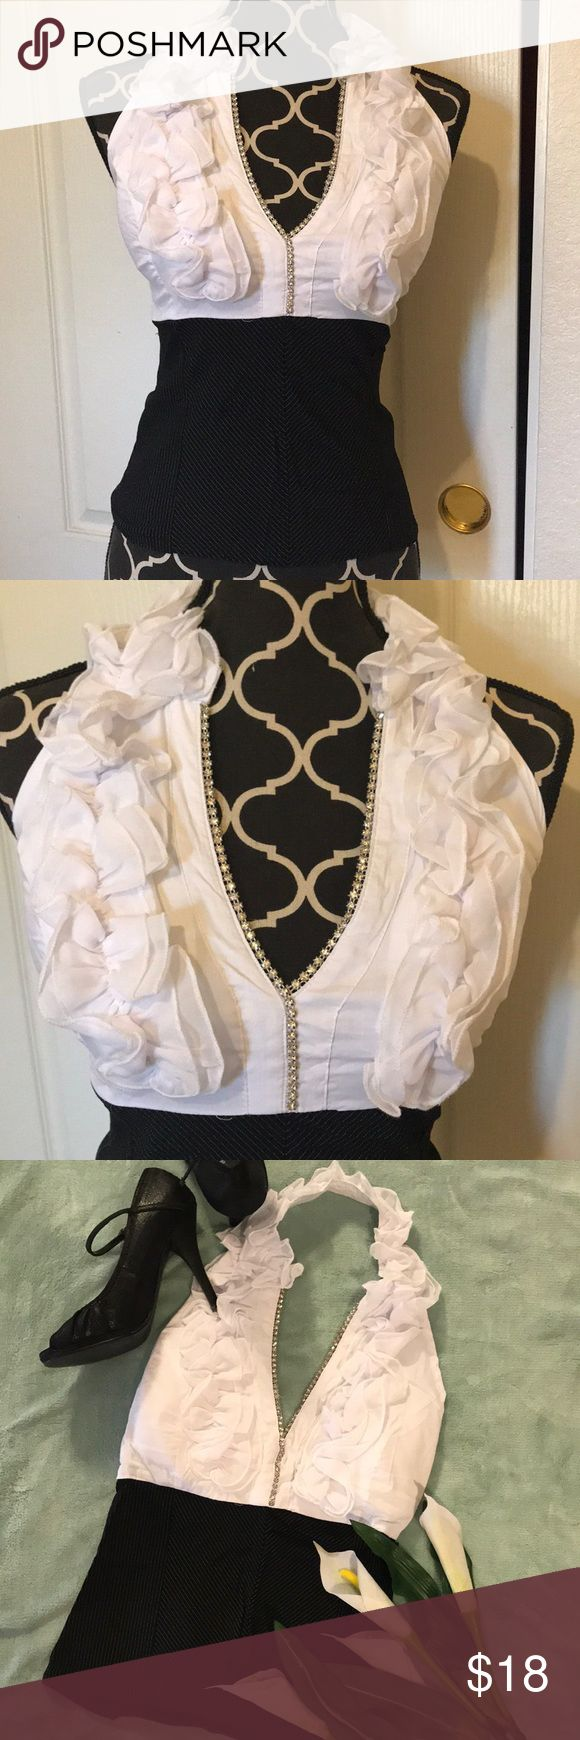 BODY CENTRAL Halter Tops White black halter top with ruffle detail at front through all around the neck. Also Some embellished detail at front, side zipper. Never been worn, been in my closet since I bought it. Body Central Tops